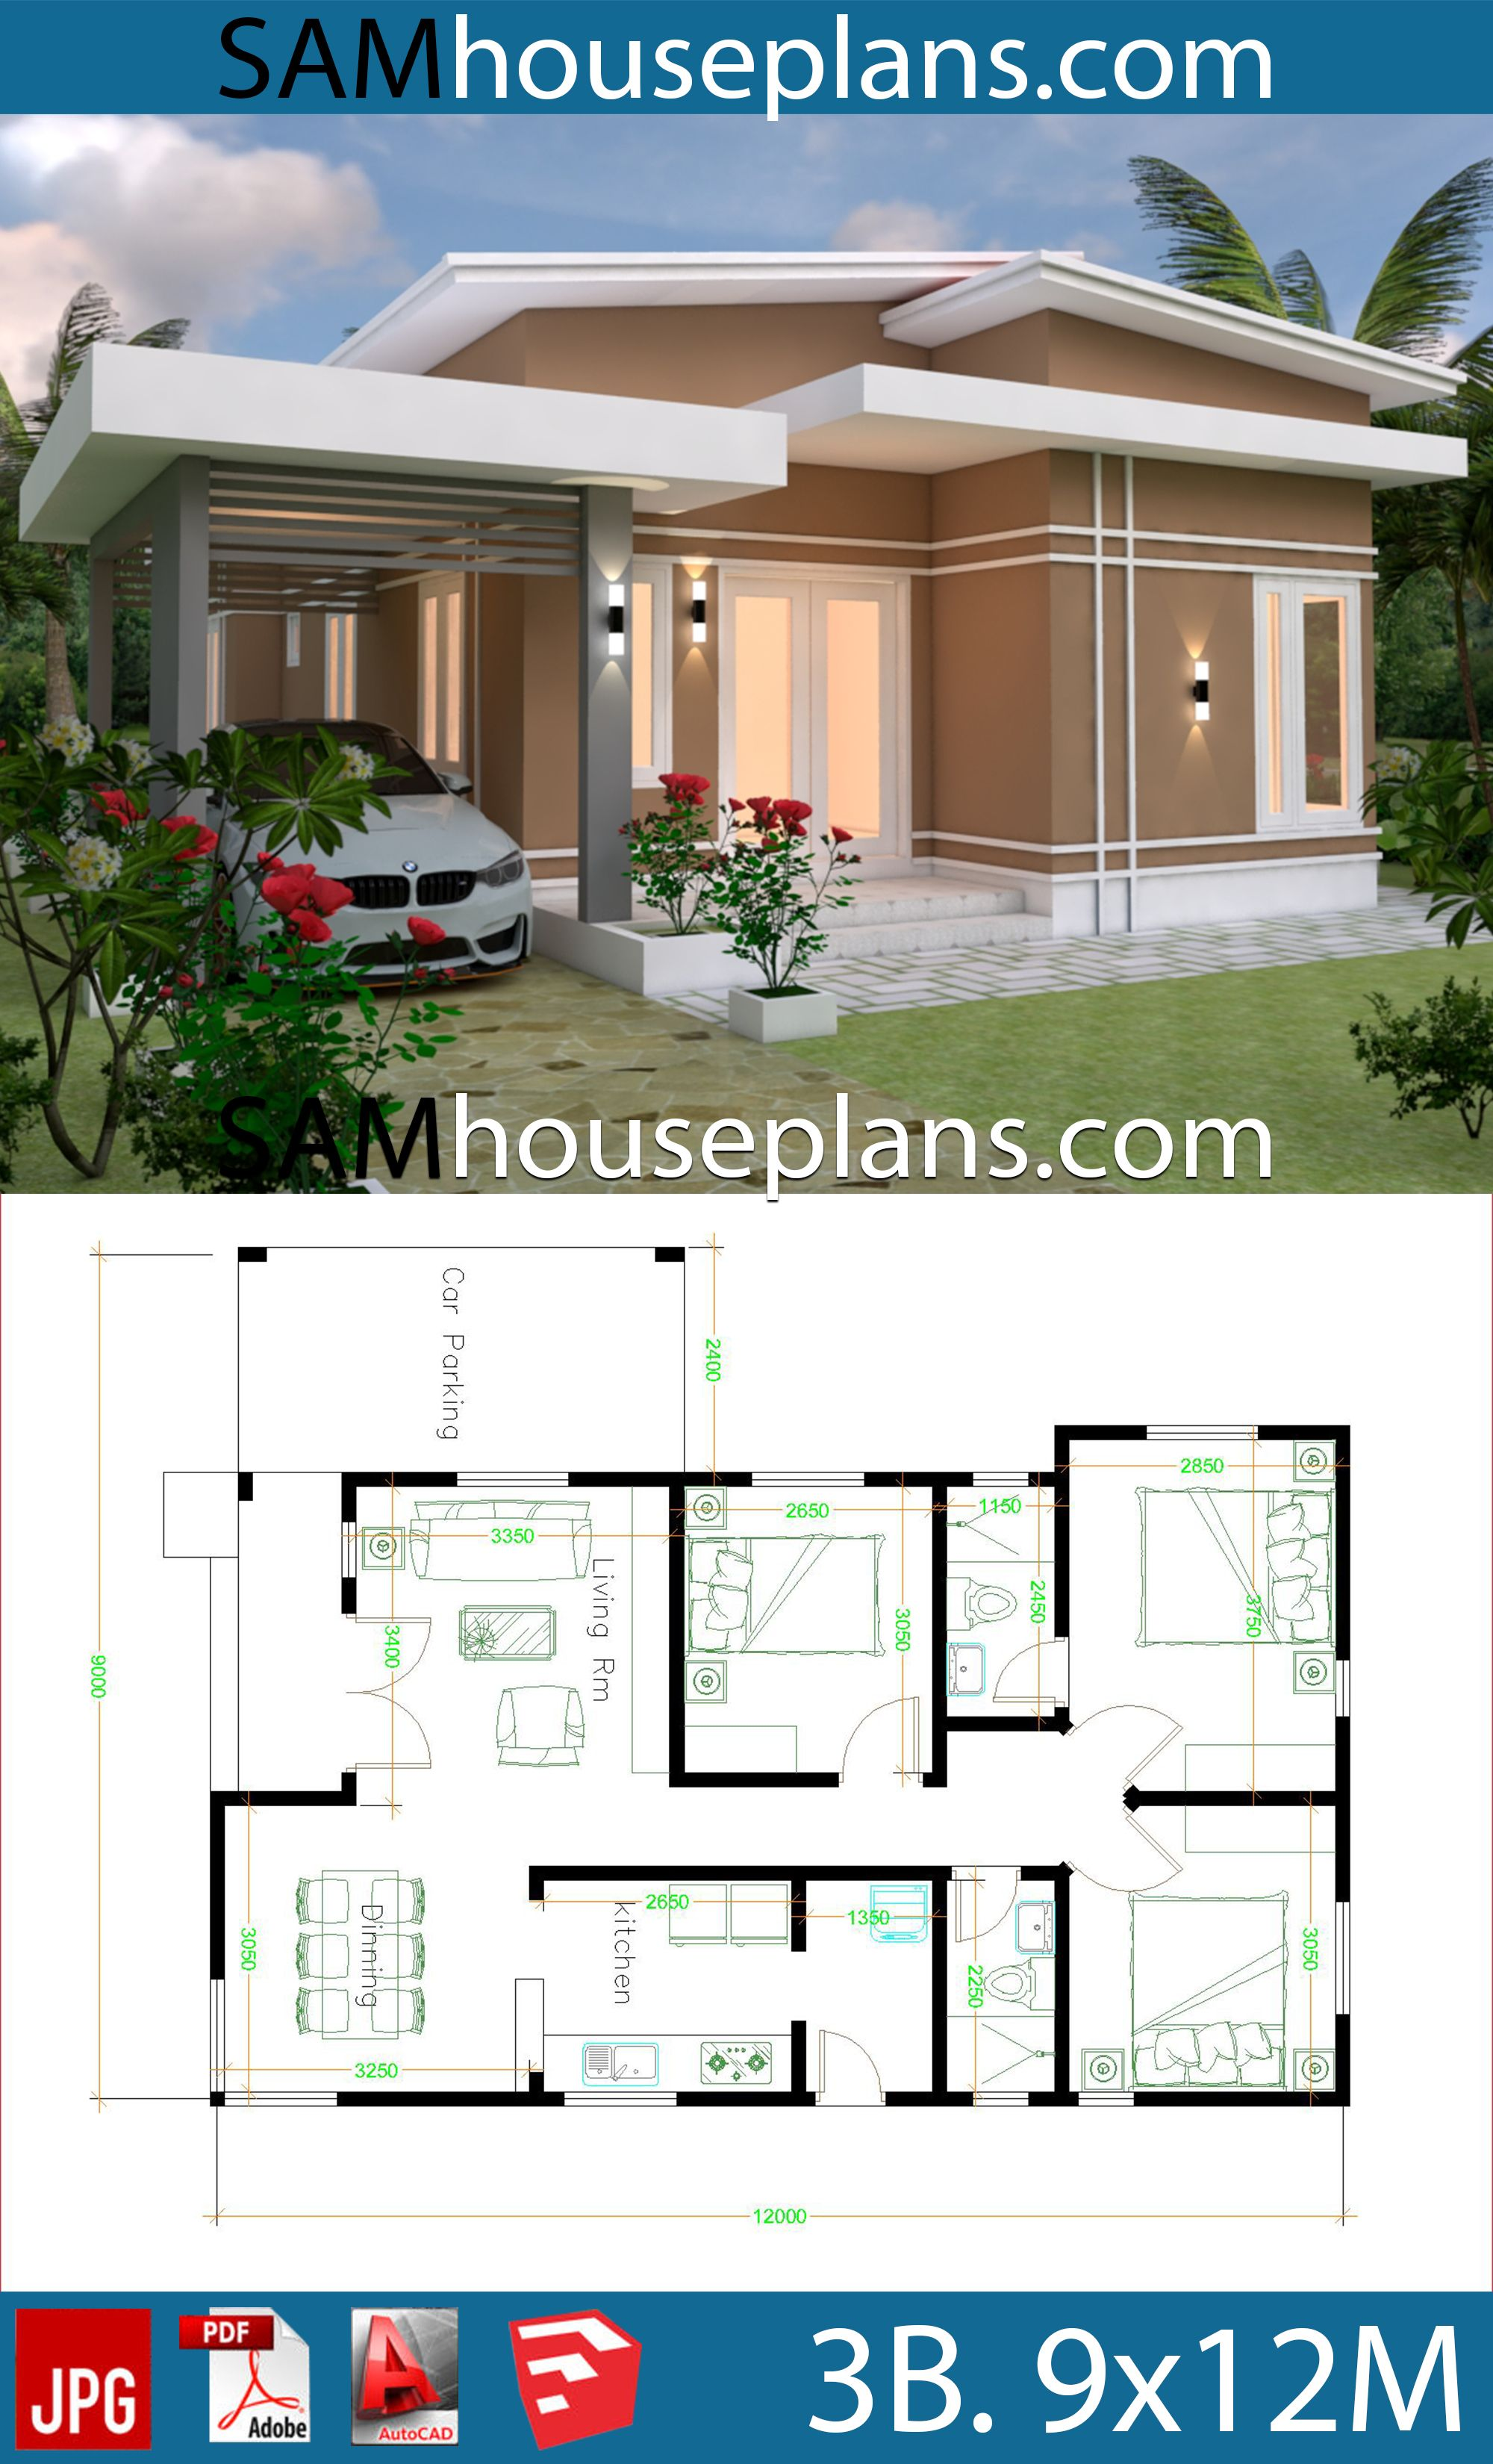 House Plans 9x12 With 3 Bedrooms Roof Tiles House Plans Free Downloads Affordable House Plans Small House Design Plans House Plans